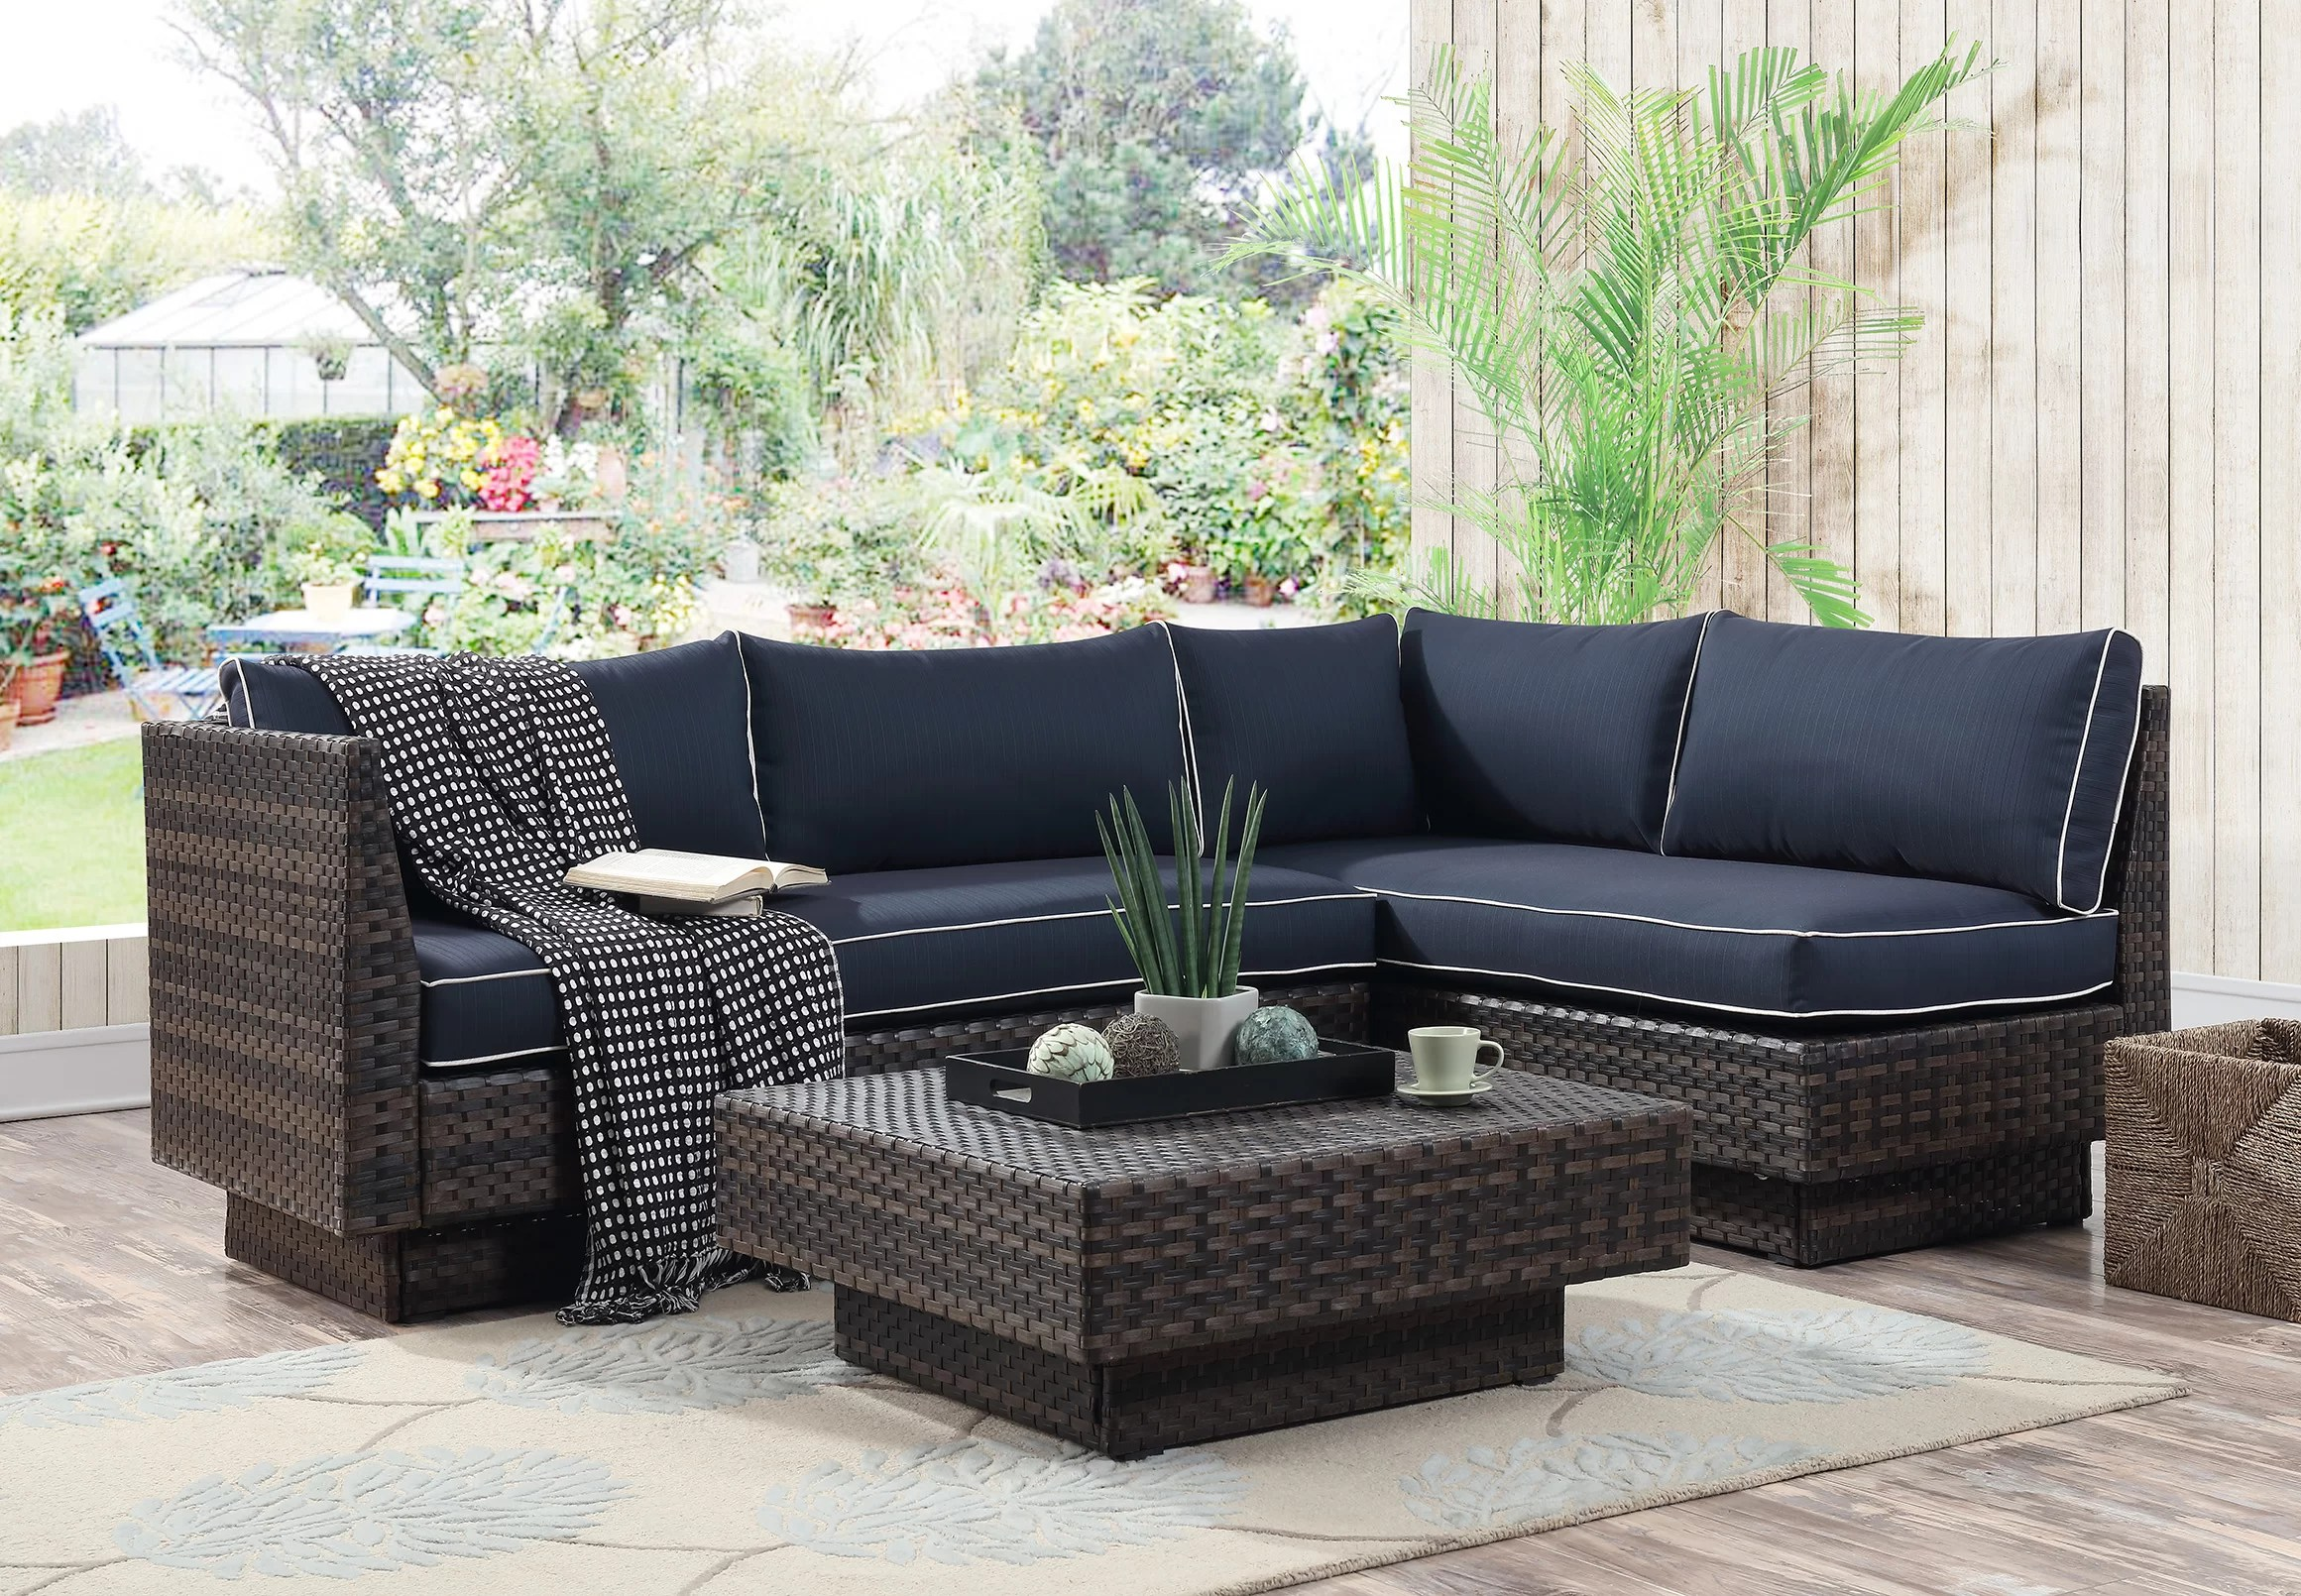 Rattan Sofa Corner Set Mulford Outdoor 3 Piece Rattan Sectional Set With Cushions